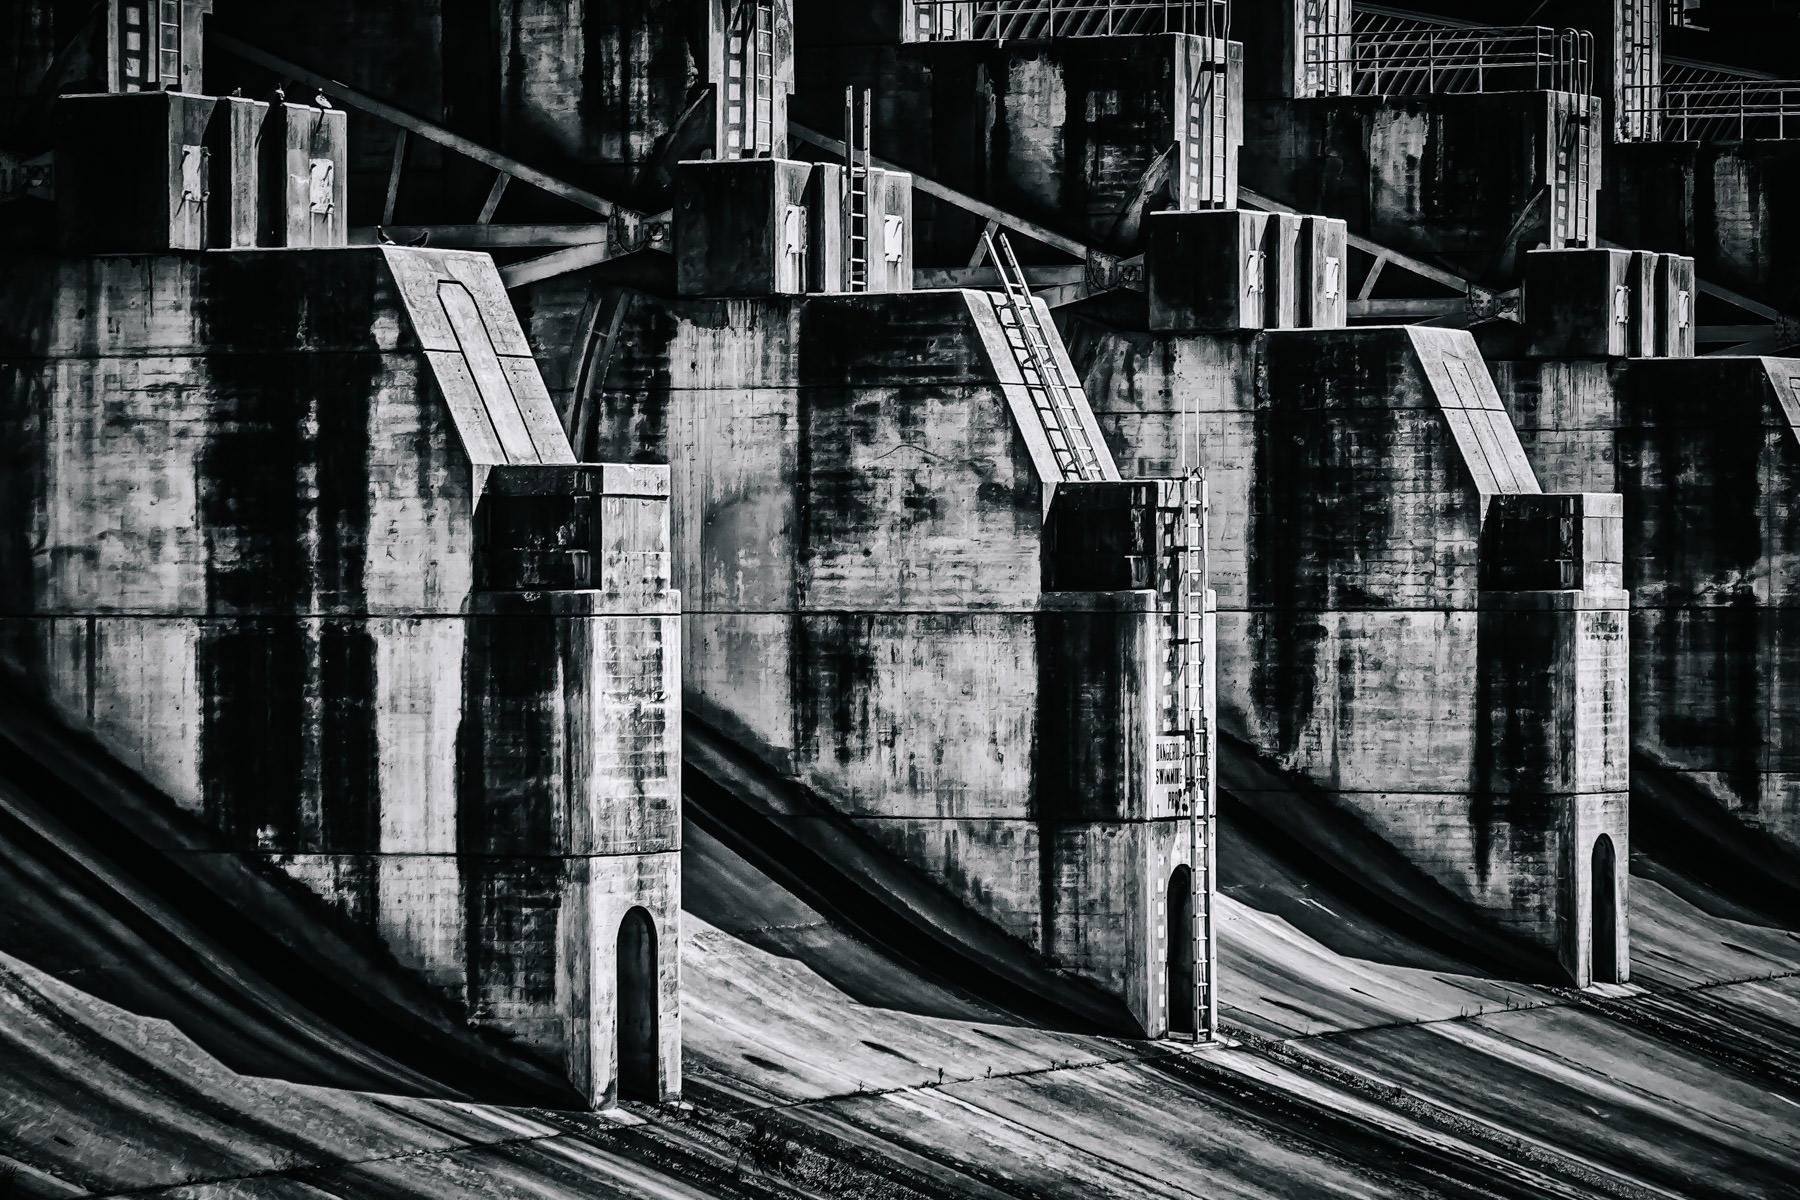 Detail of the dam that impounds Lake Lavon, Texas.